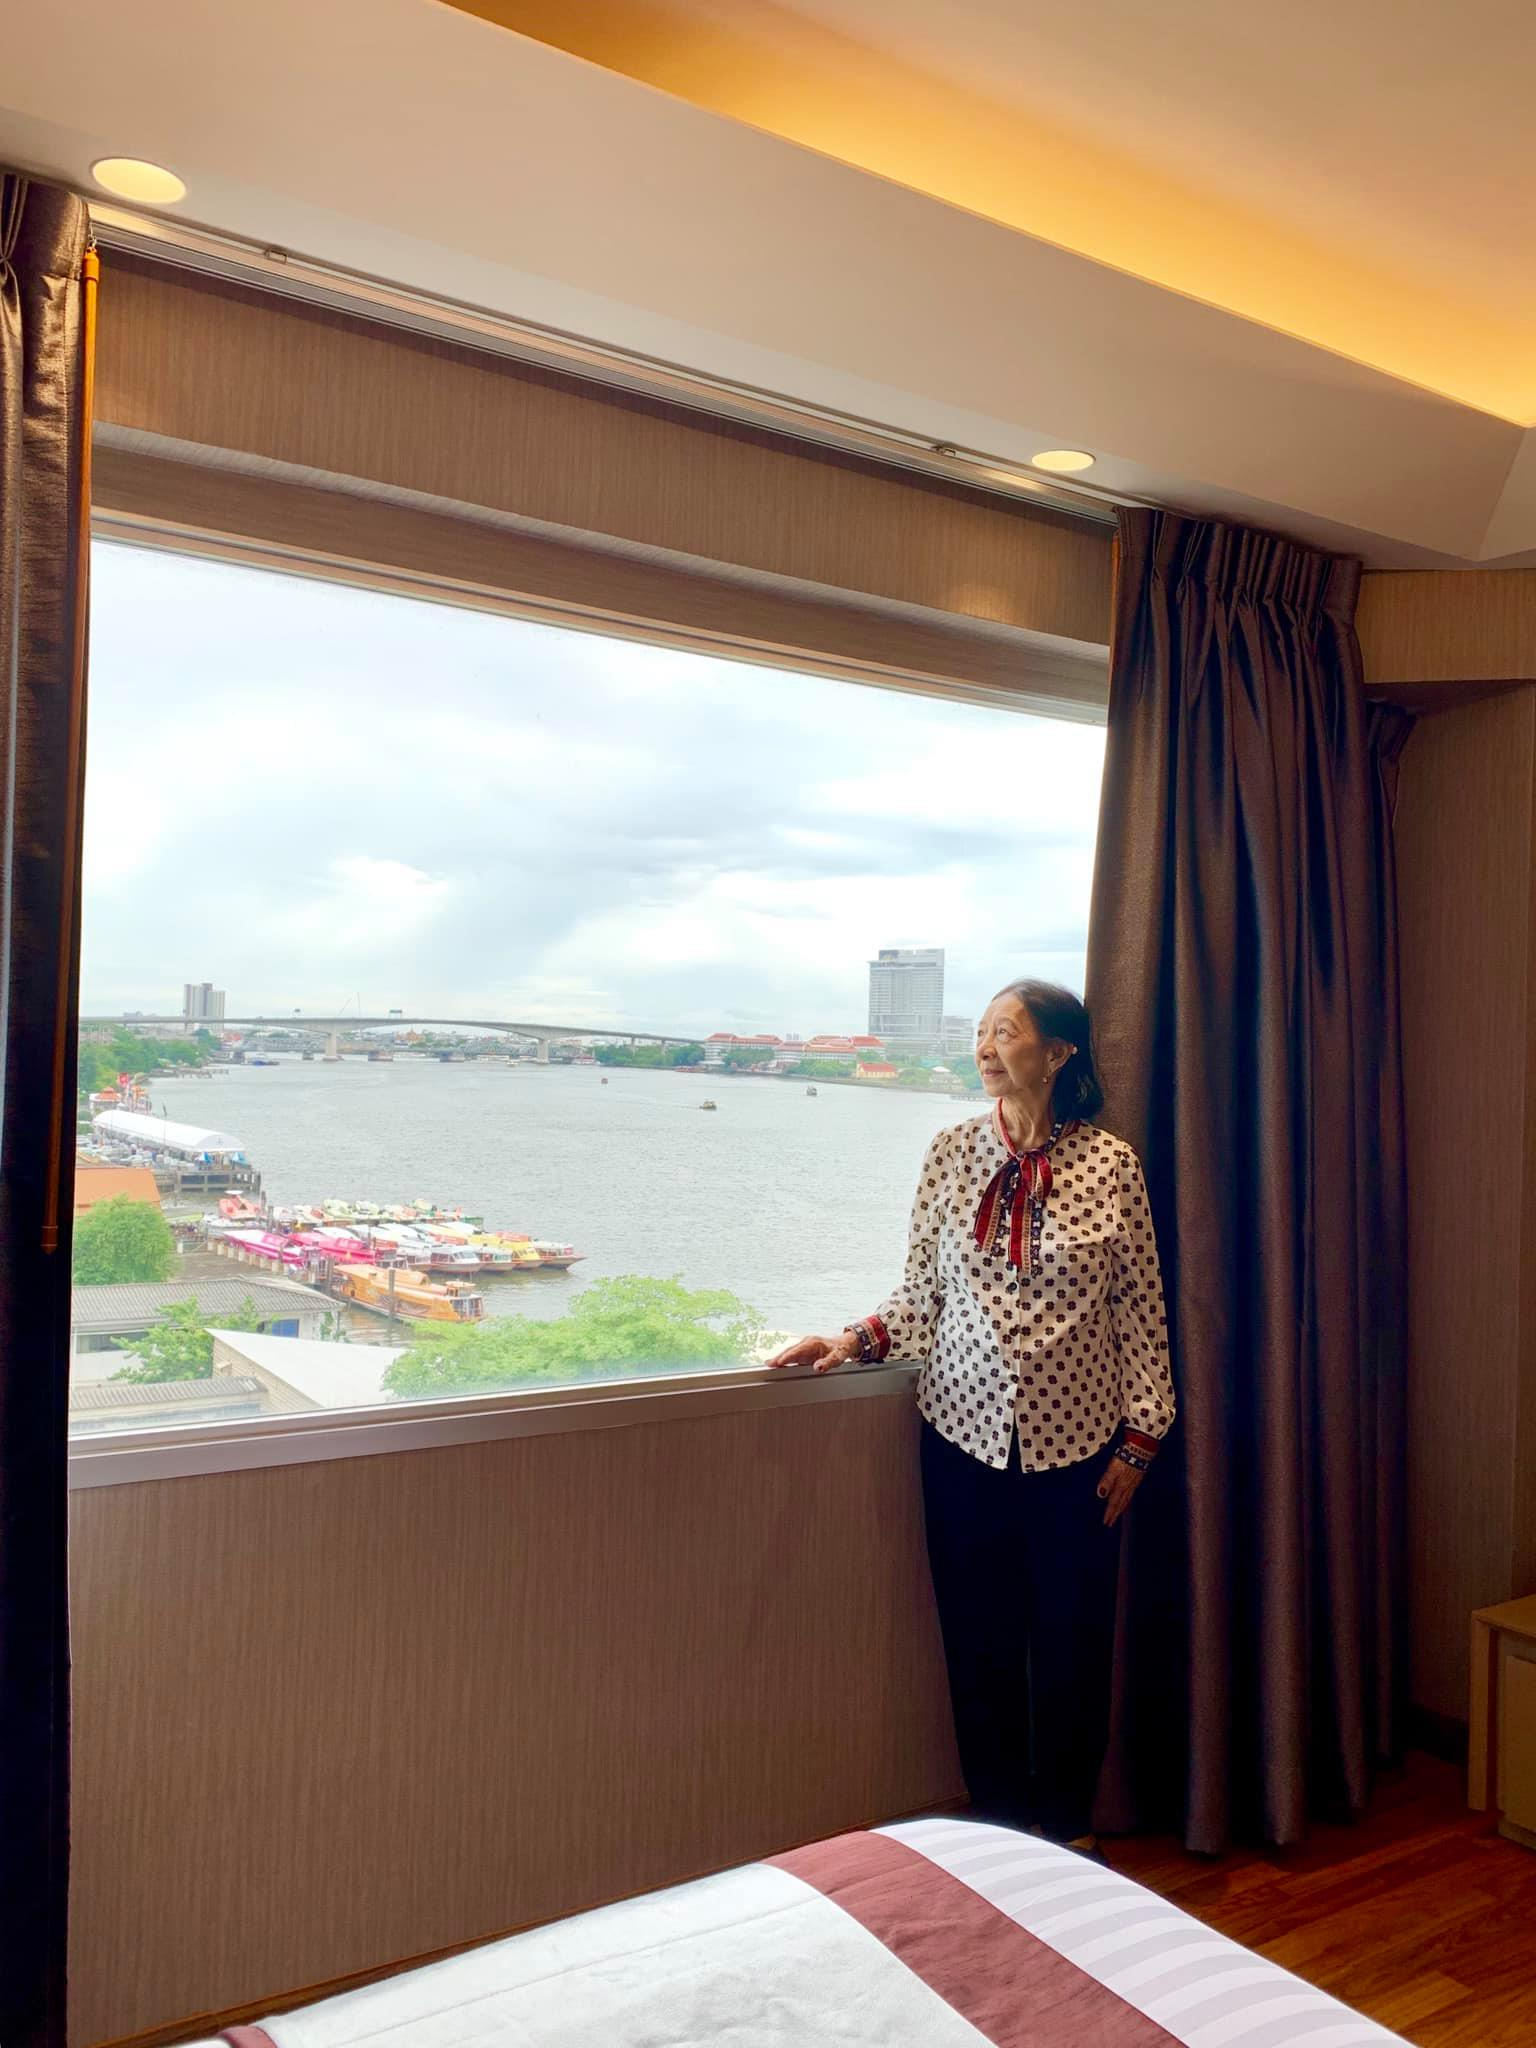 Our Luxurious Staycation At Ramada Plaza In Bangkok And Our Tour With Tinggly Experiences19